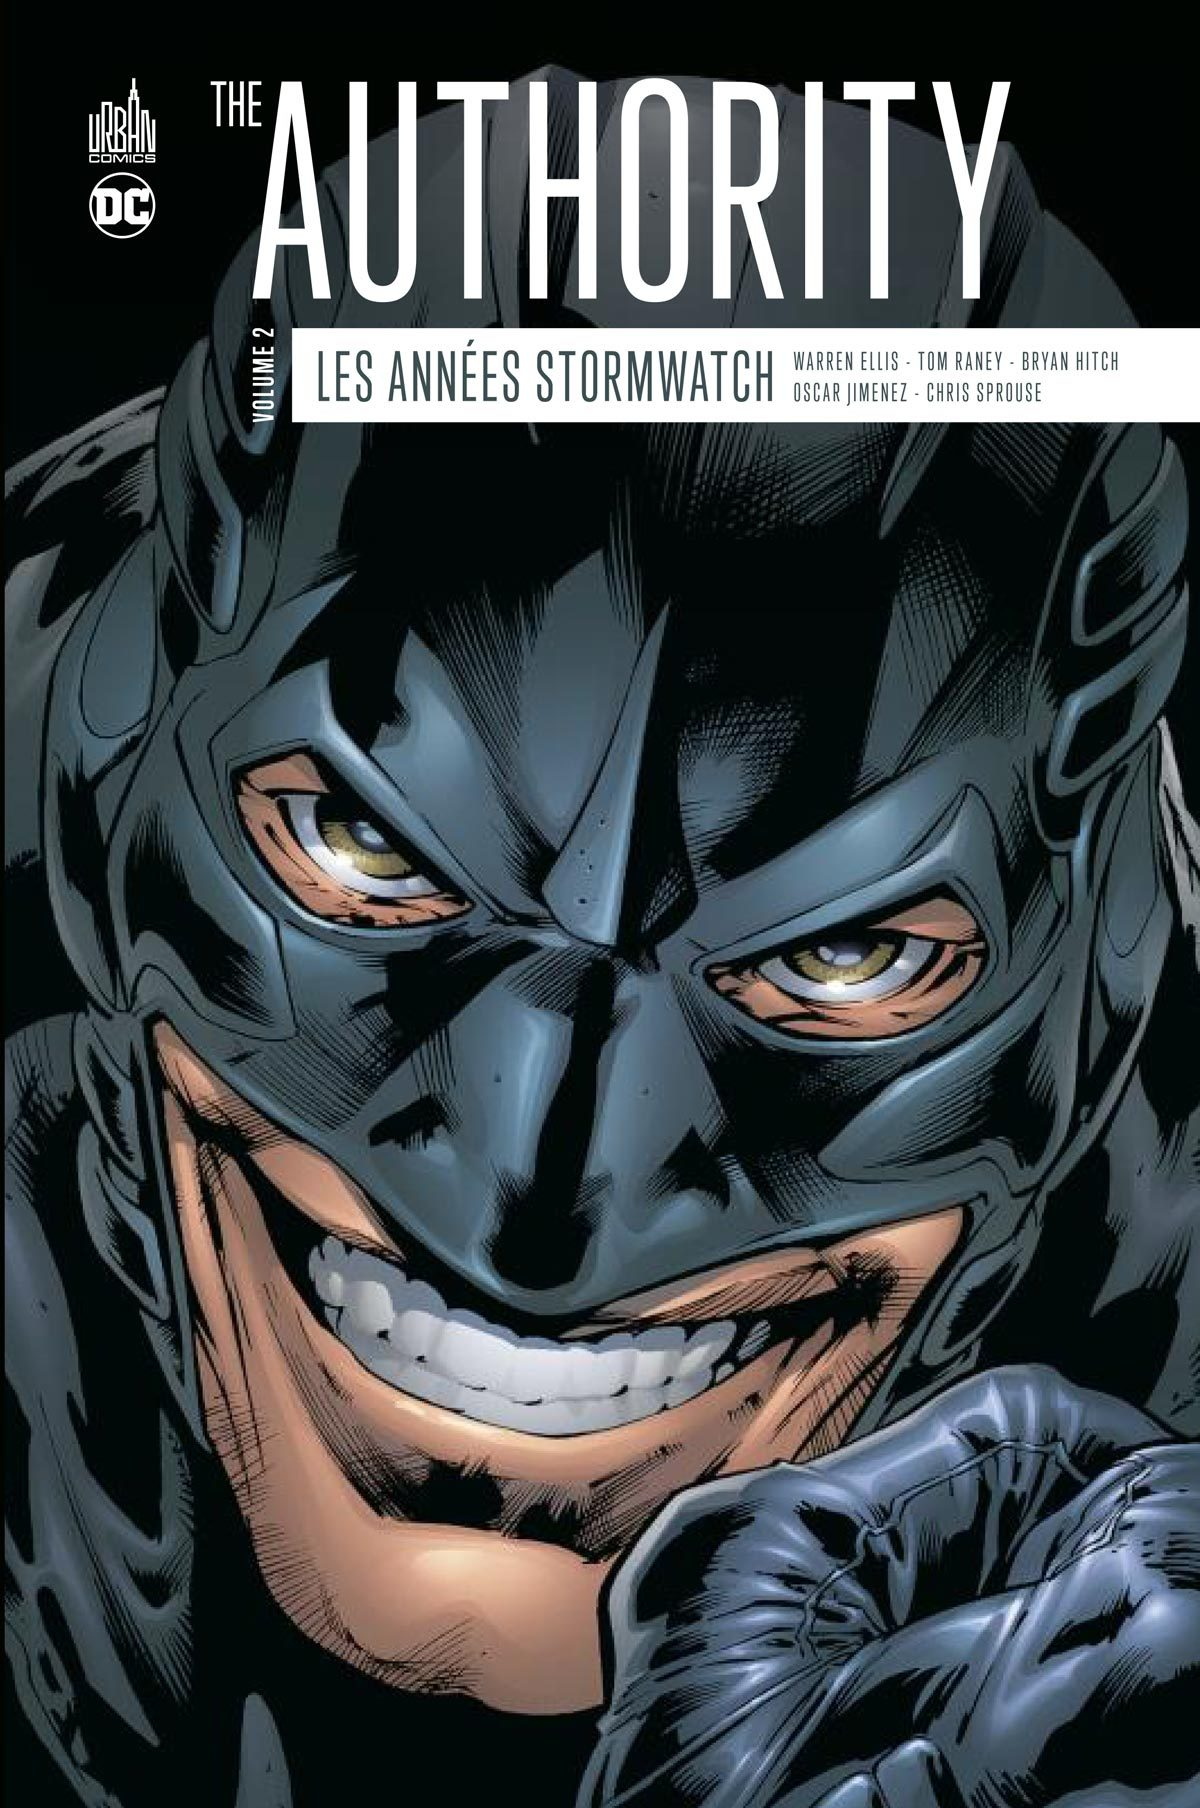 DC ESSENTIELS - THE AUTHORITY : LES ANNEES STORMWATCH TOME 2